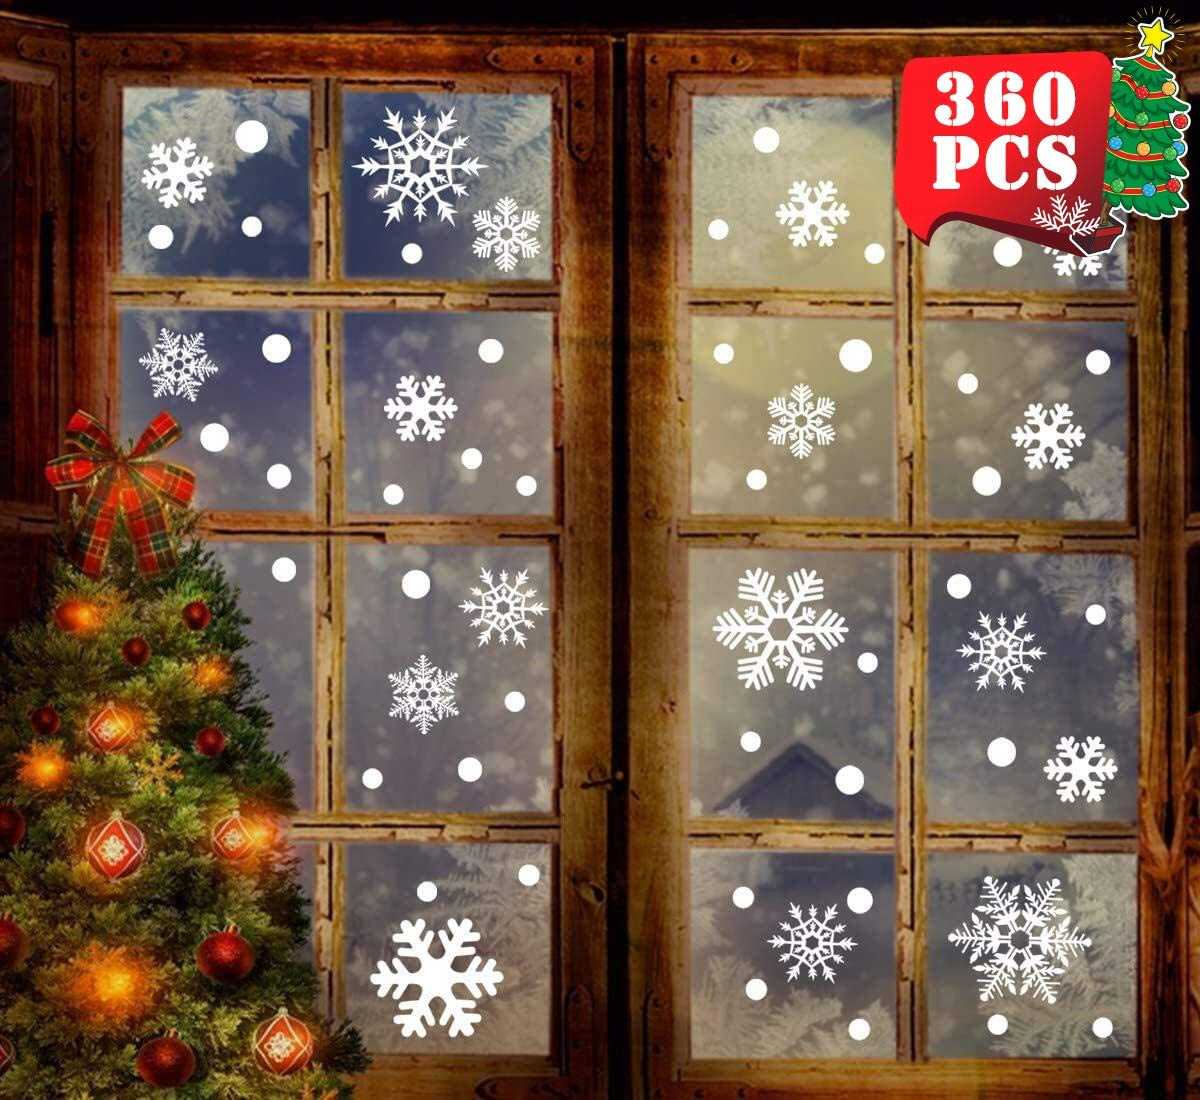 100 Pcs Fabric Snowflake Embellishments for Christmas Tree Party Home Decors